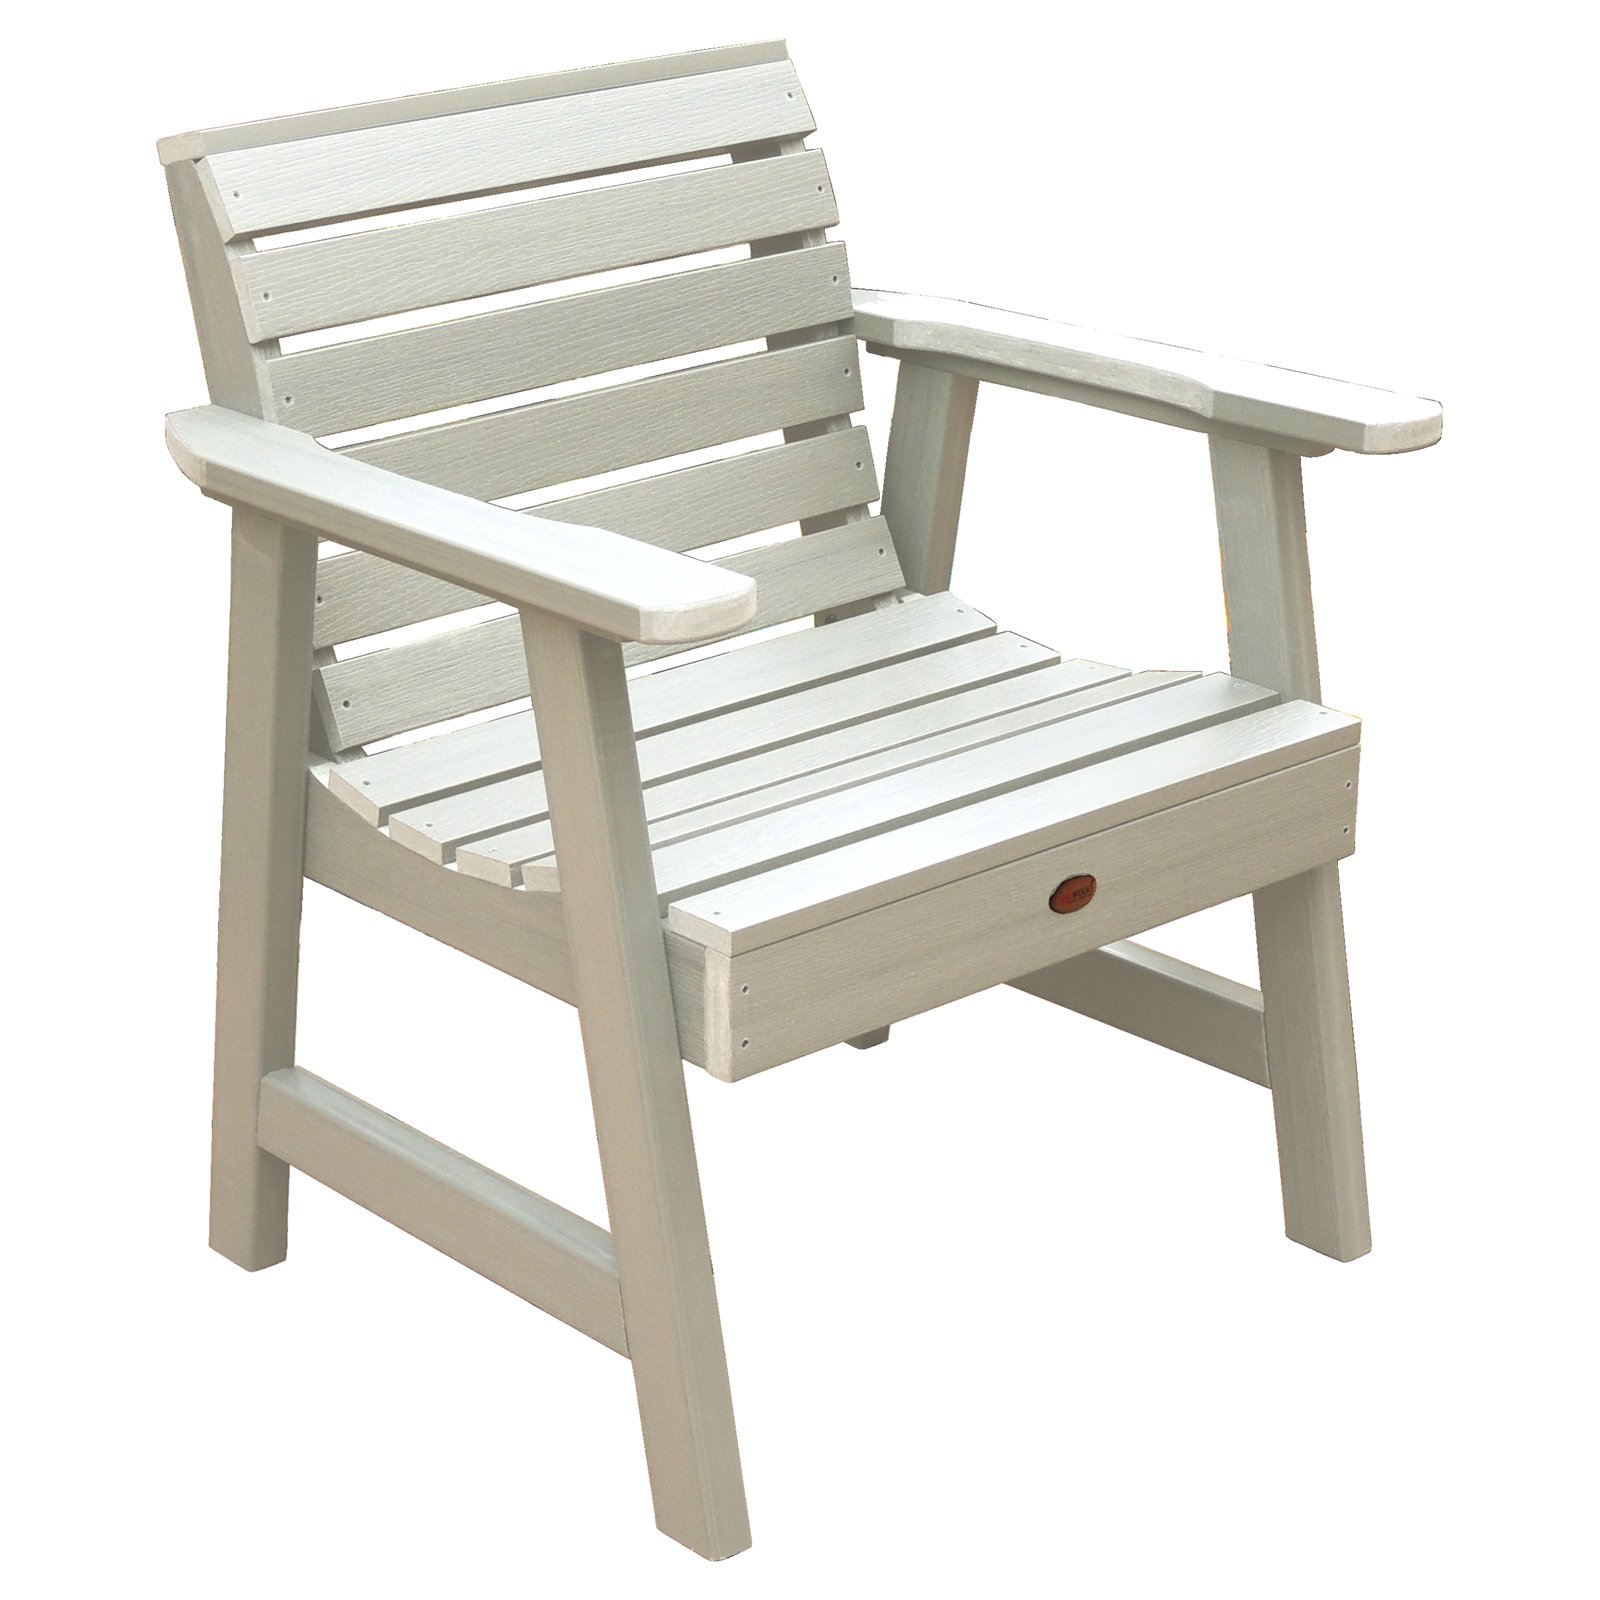 Plastic Lounge Chair Highwood Weatherly Recycled Plastic Garden Lounge Chair